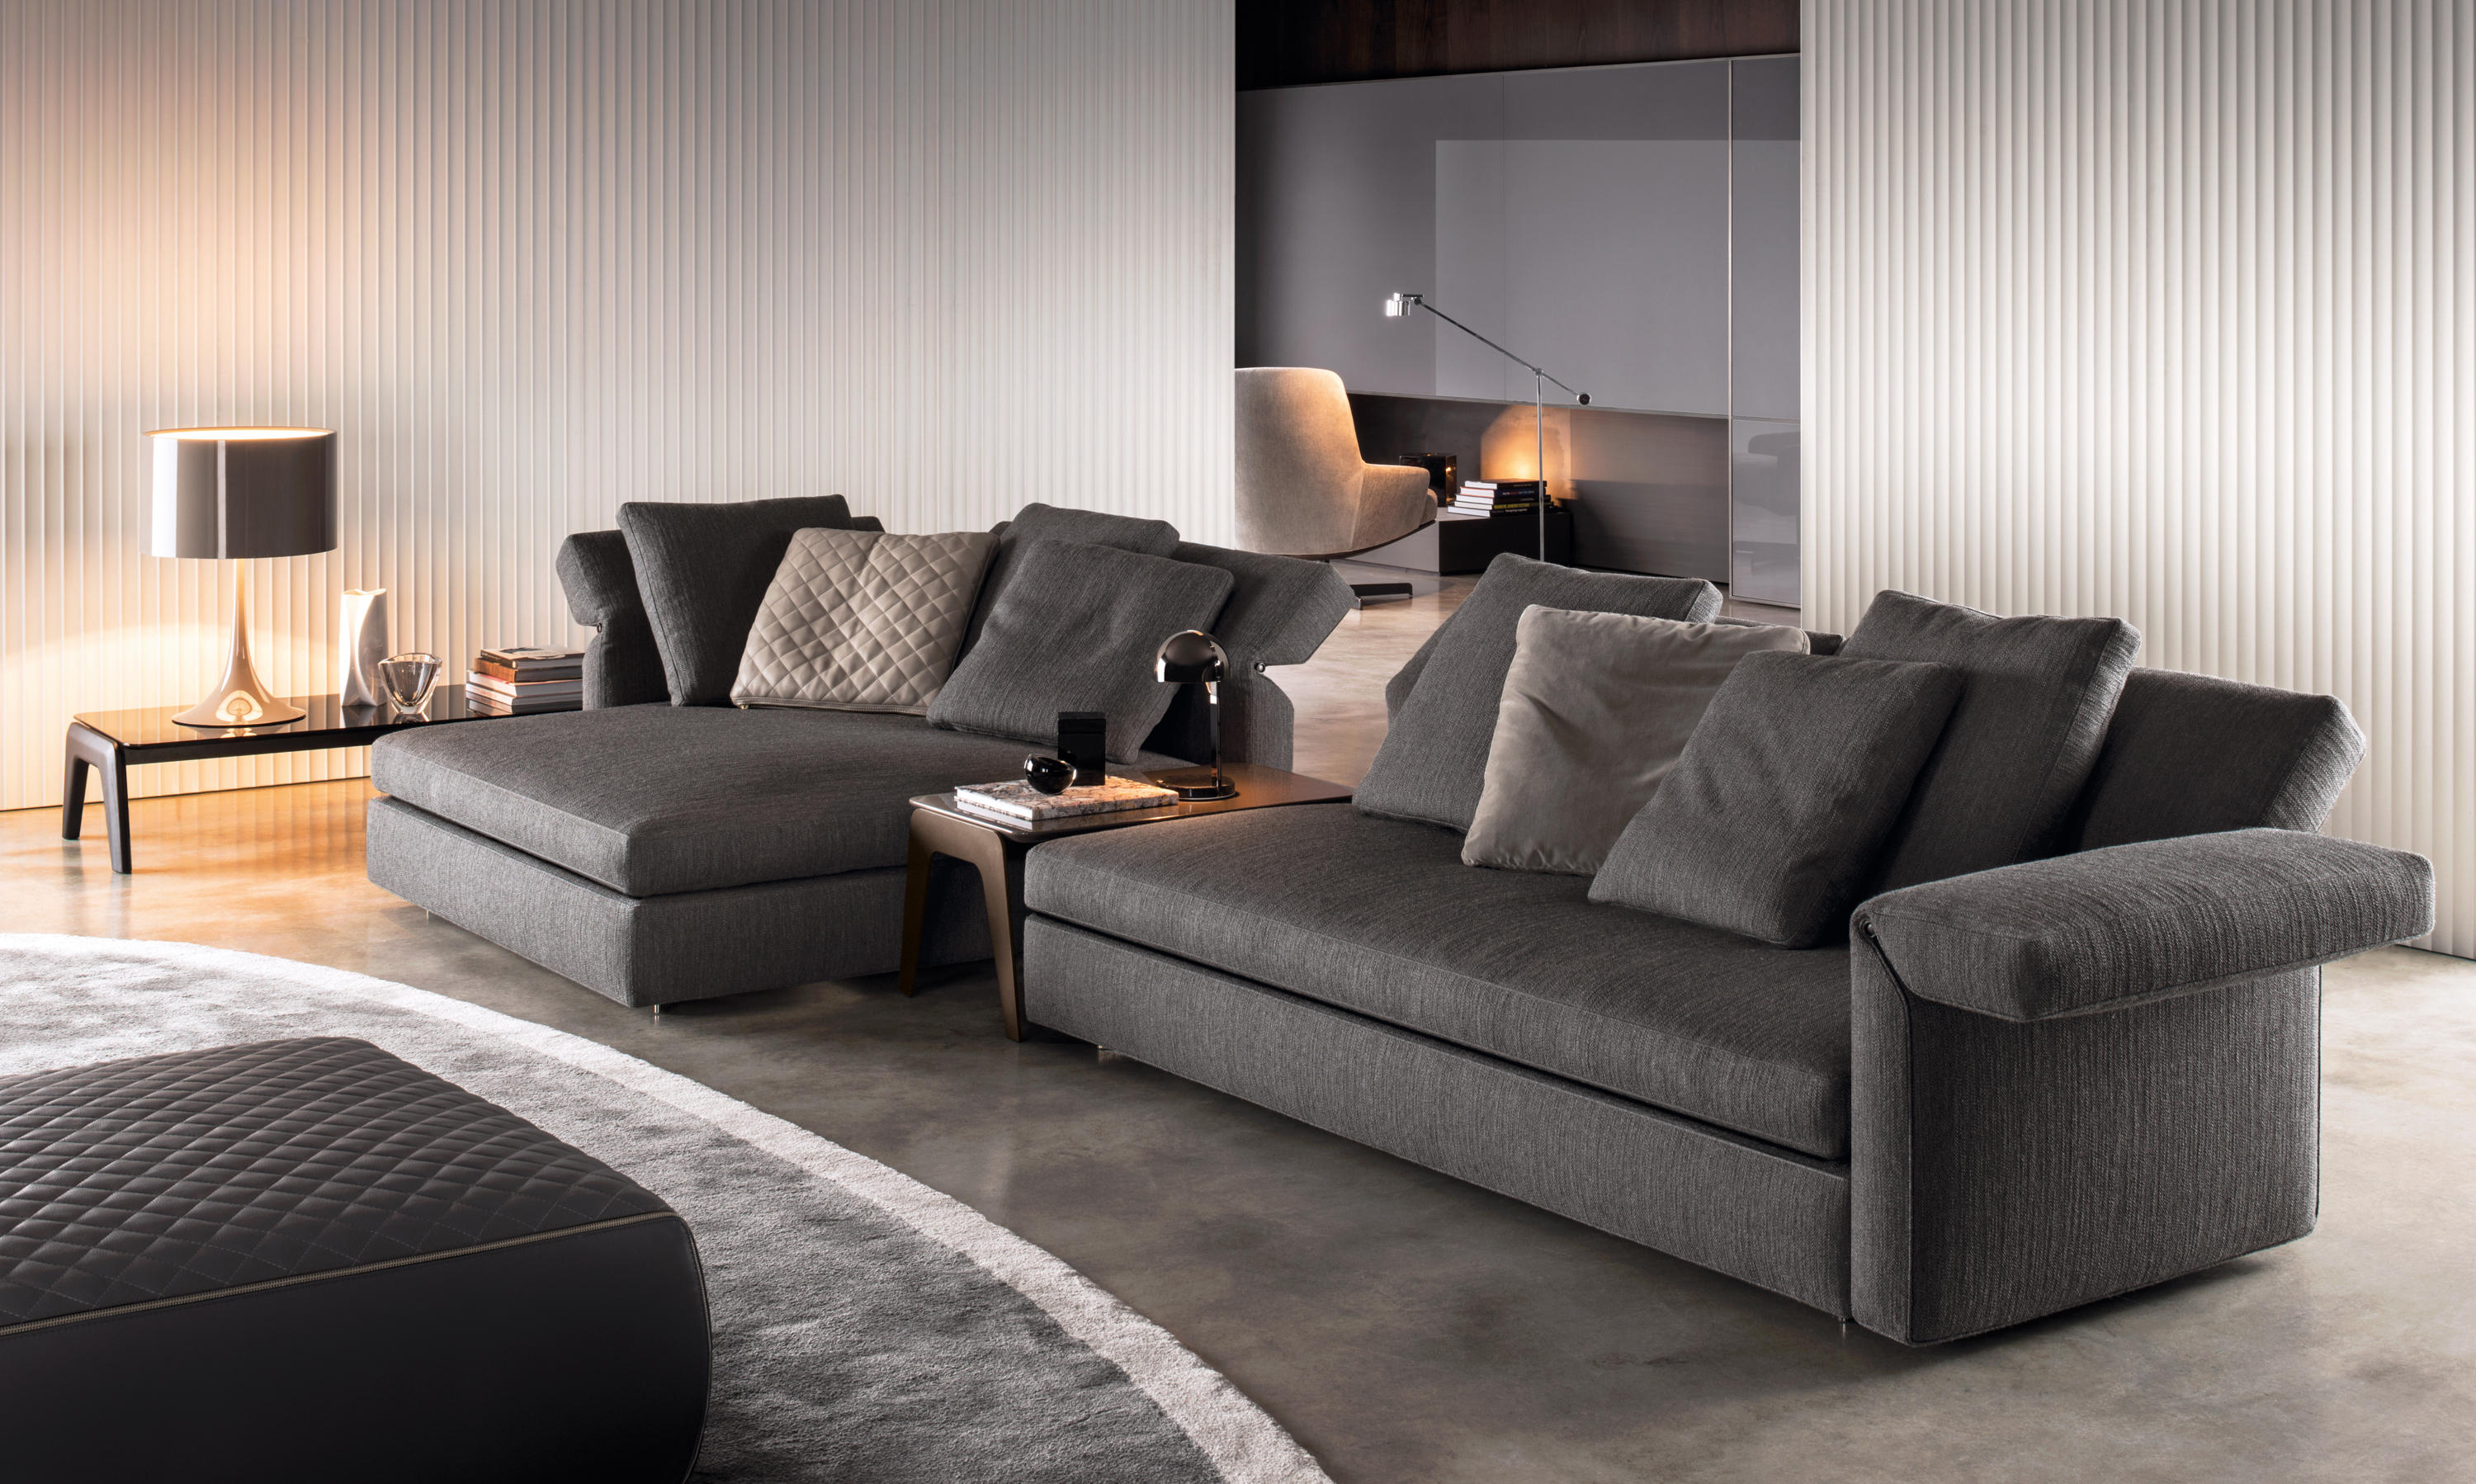 Collar lounge sofas from minotti architonic for Sofa gebraucht